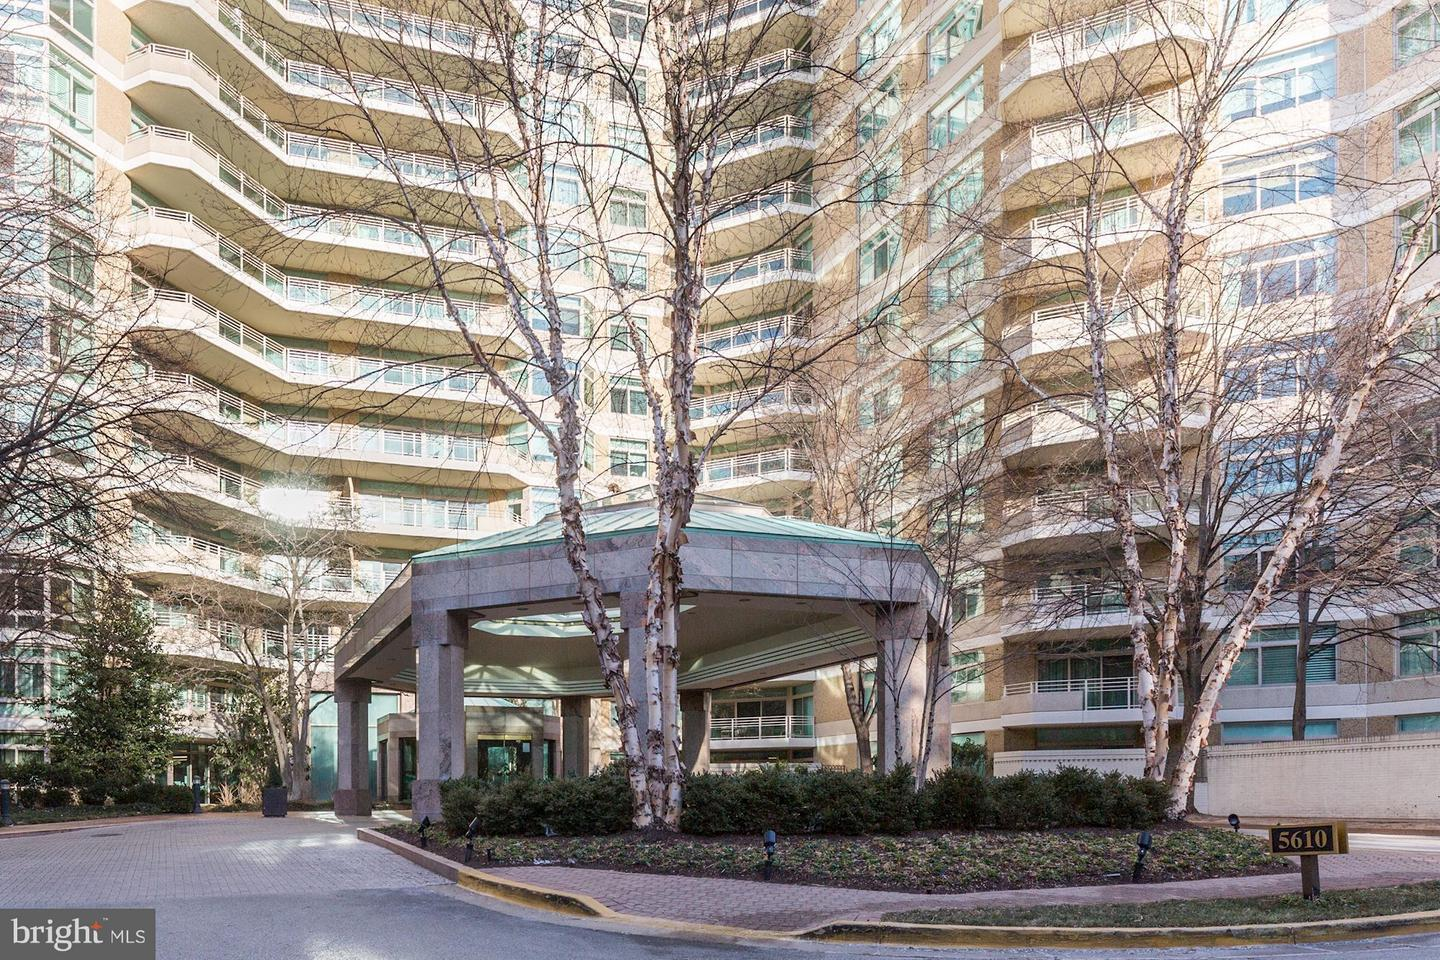 Single Family Home for Sale at 5610 Wisconsin Ave #1203 5610 Wisconsin Ave #1203 Chevy Chase, Maryland 20815 United States